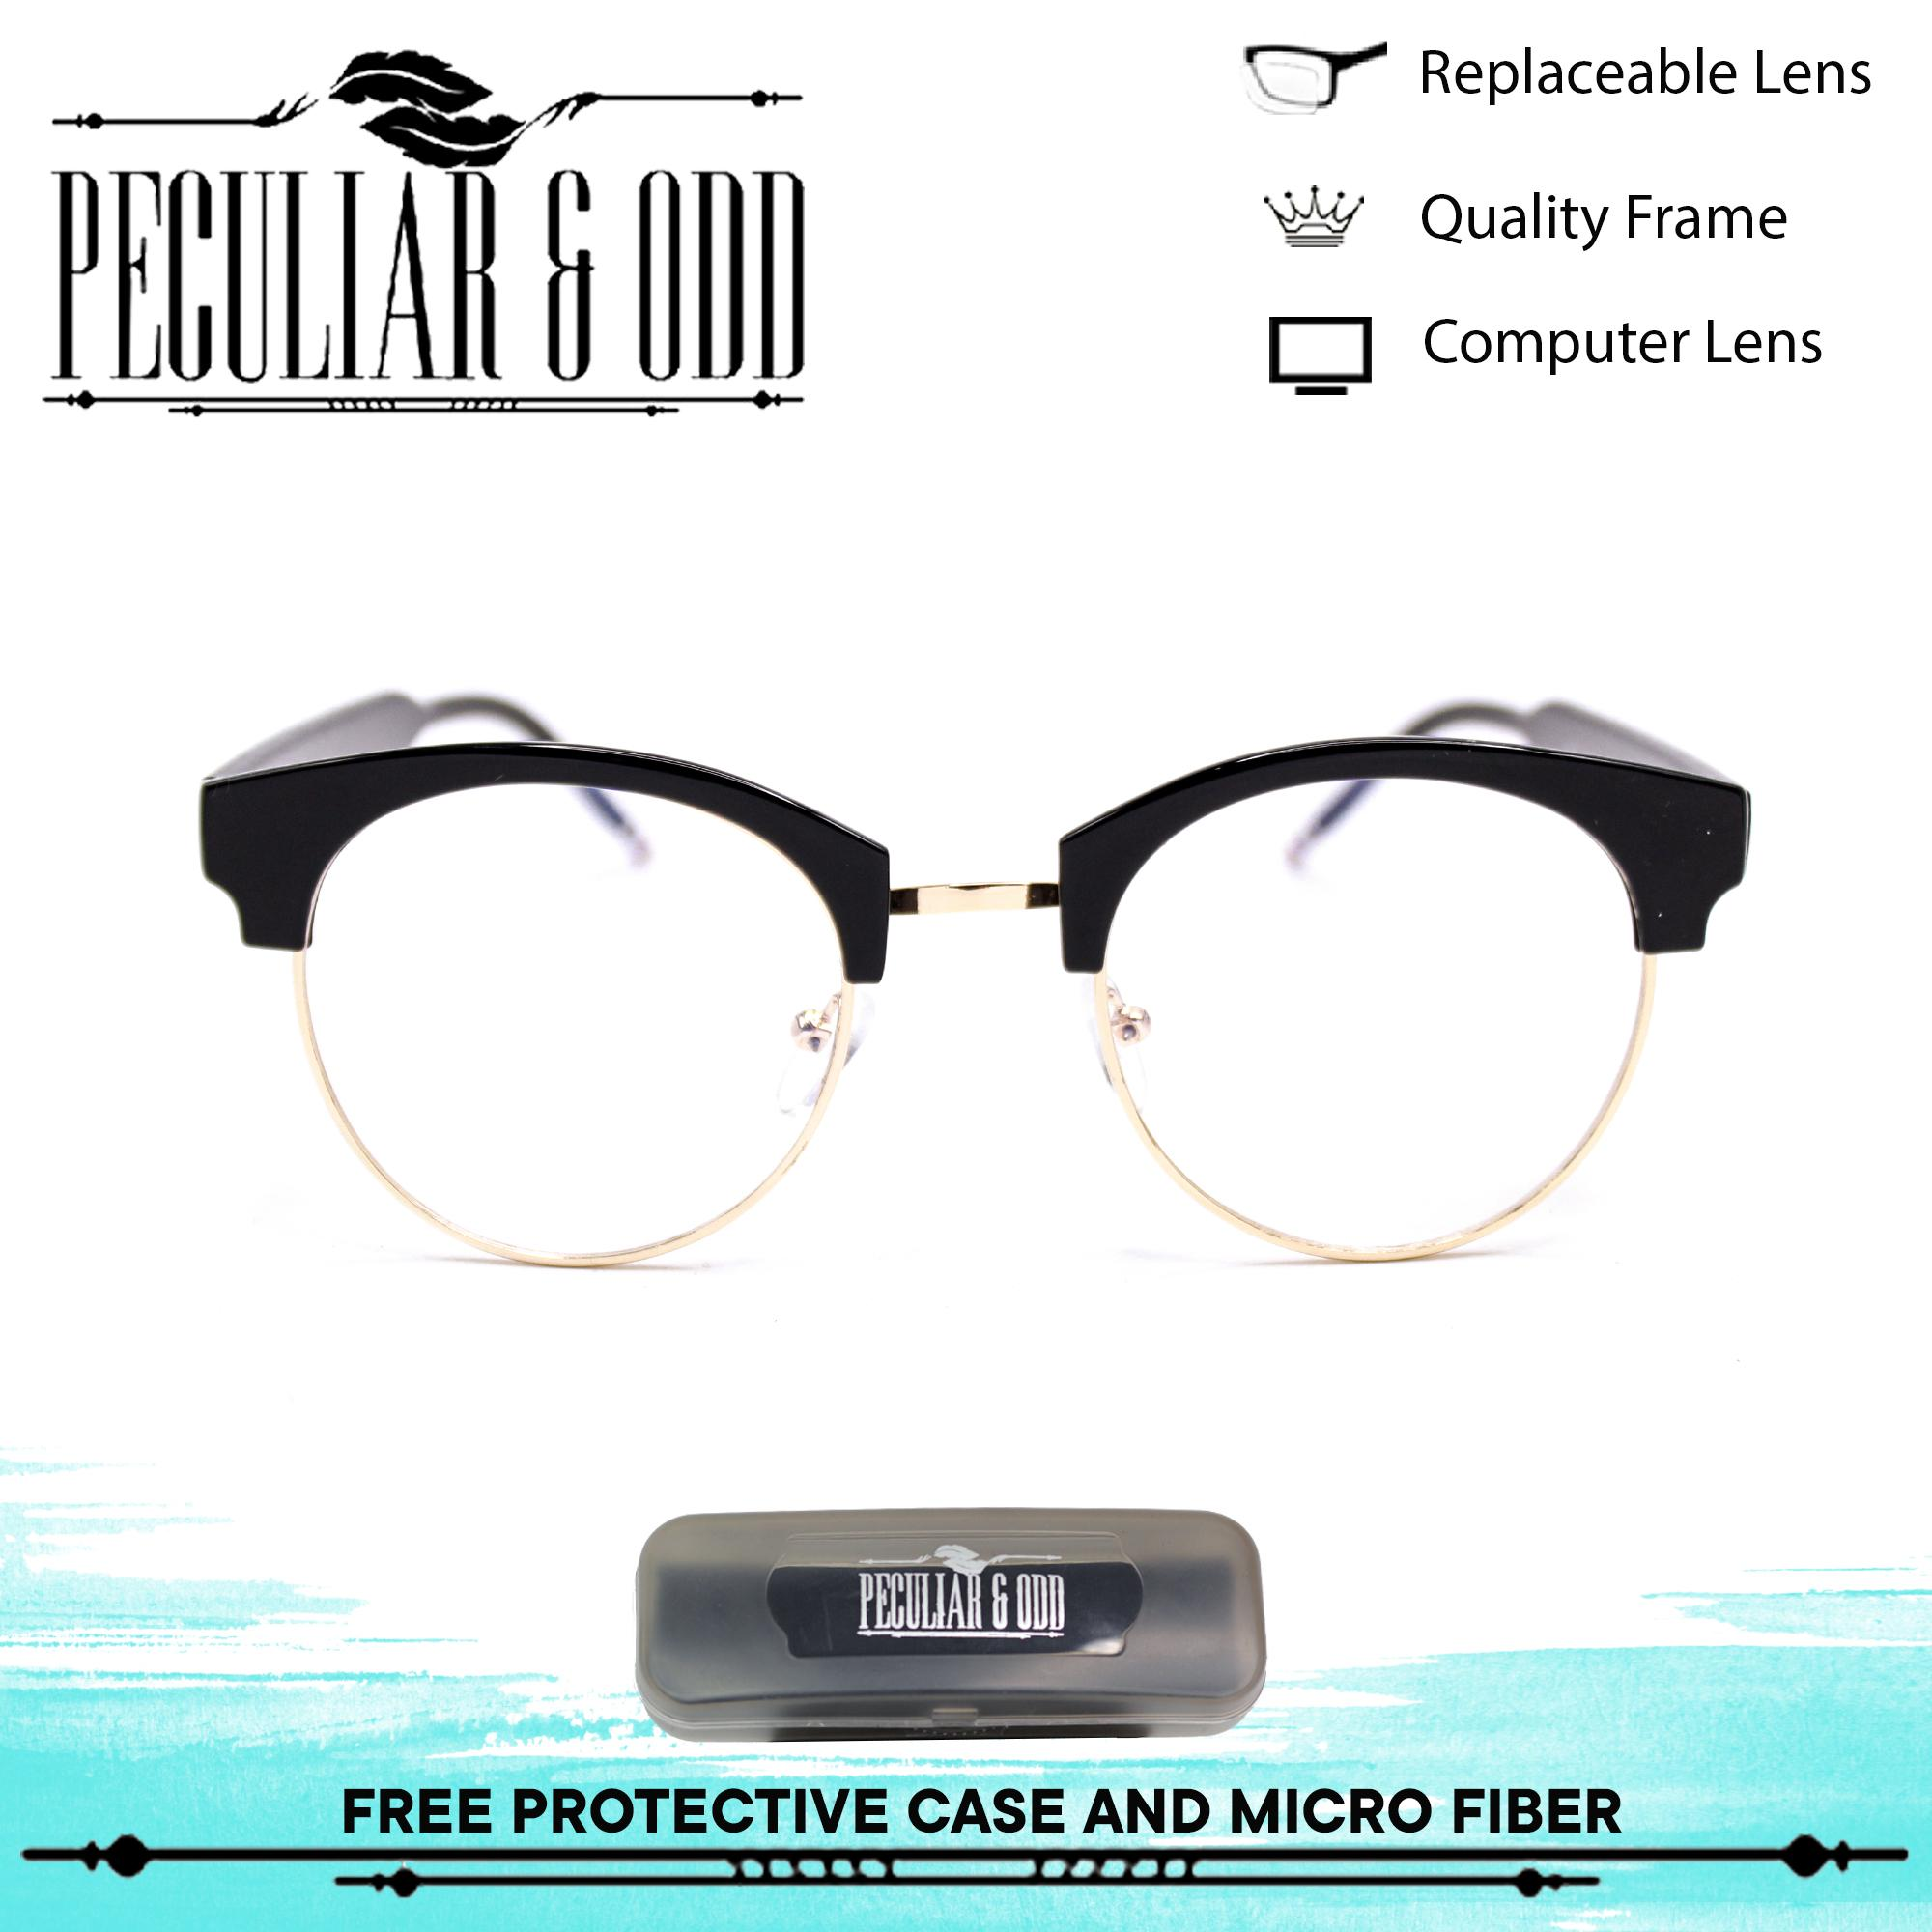 62f93ffbbd8d1 Peculiar Round Eyeglasses 8630 Antiradiation Lenses in Thin Metal Frame  Lightweight Replaceable Optical Lens Unisex Eyewear